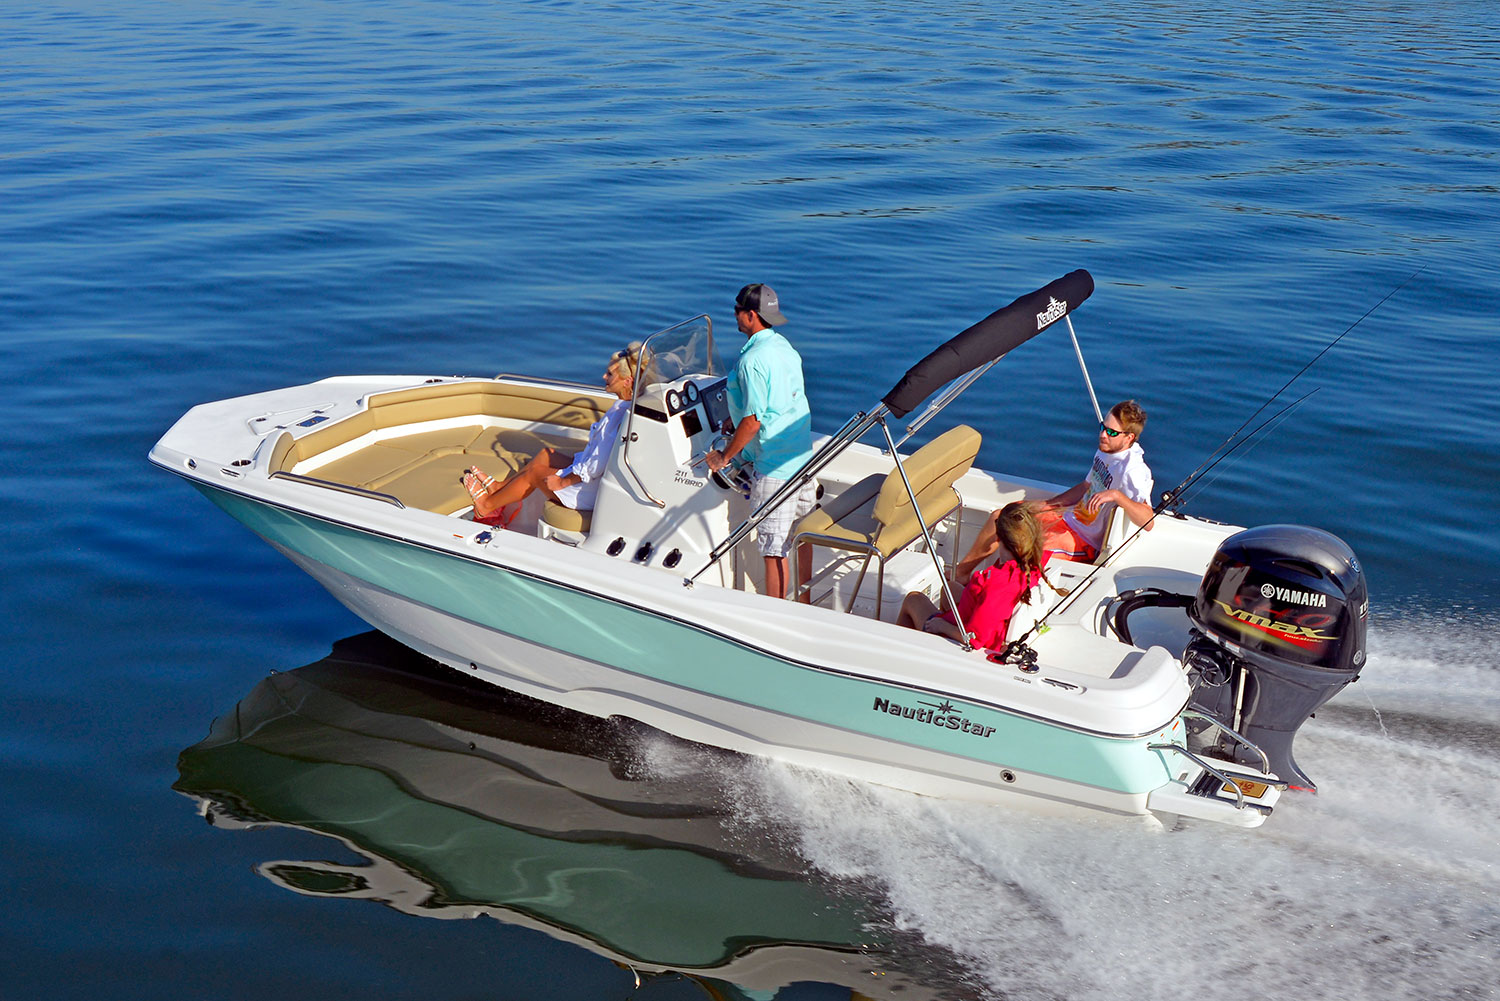 Two women and a man lounge while another man captains the NauticStar 211 Hybrid